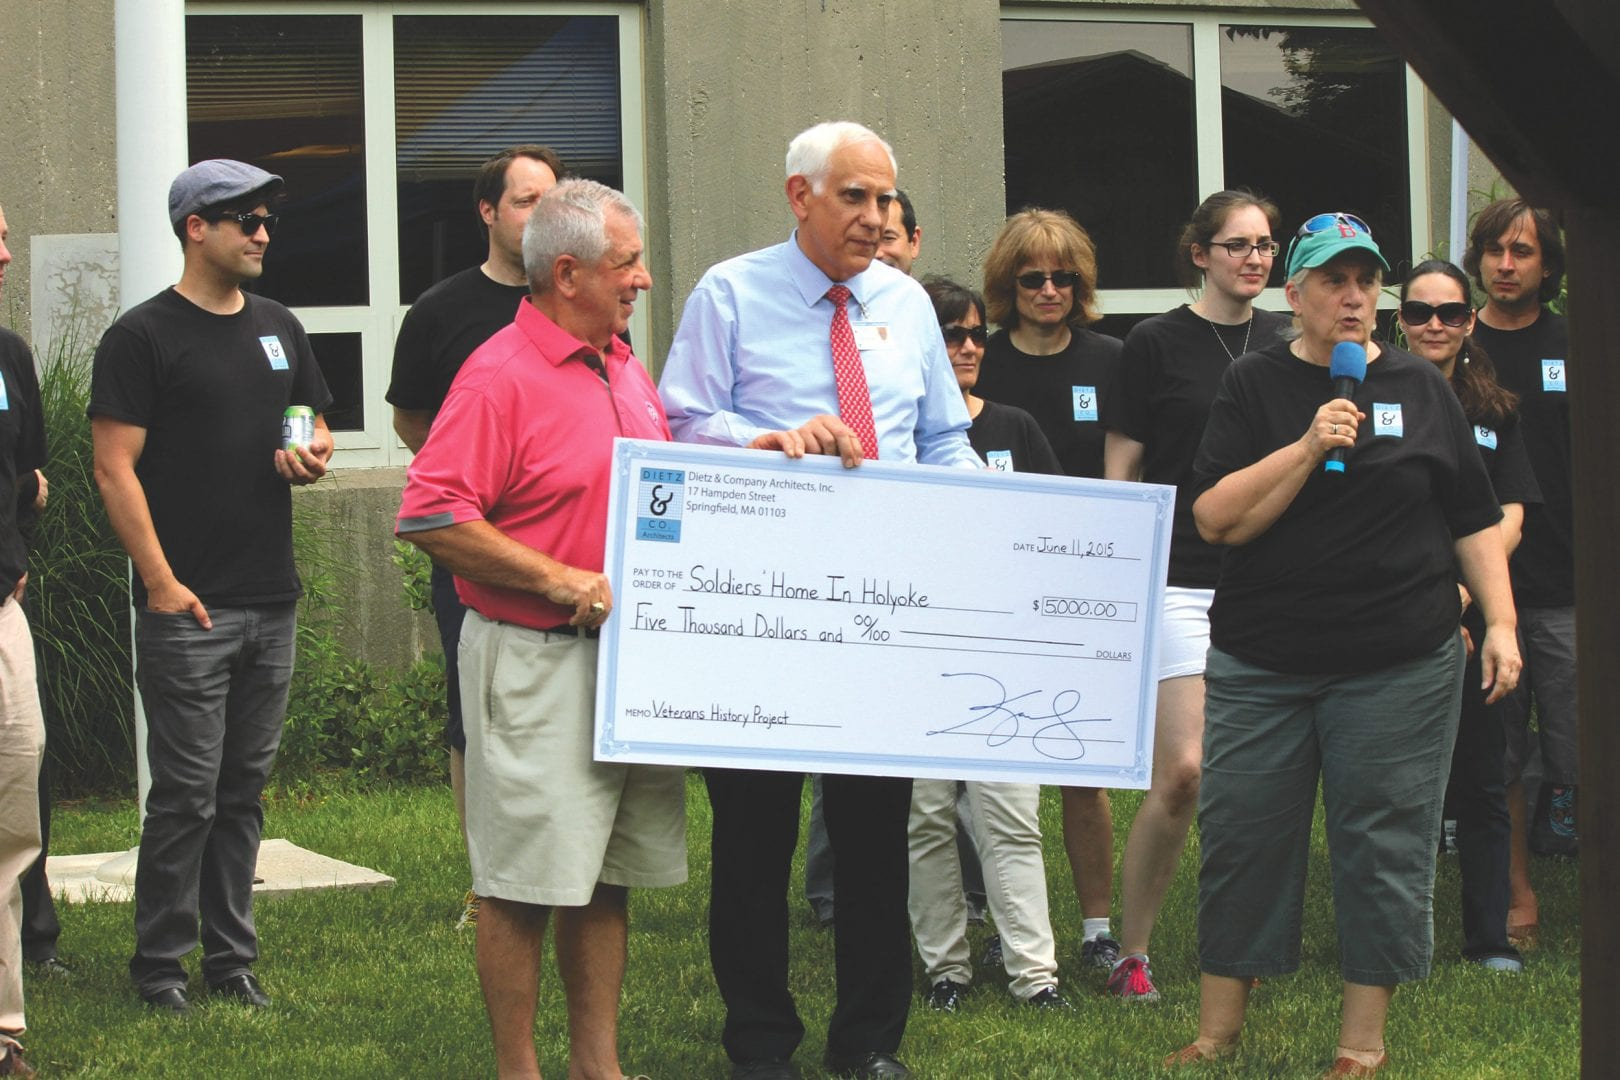 Kerry Dietz, right, presents a donation to the Soldiers' Home in Holyoke as part of her company's 30th anniversary celebration. Several staff members are in the background.